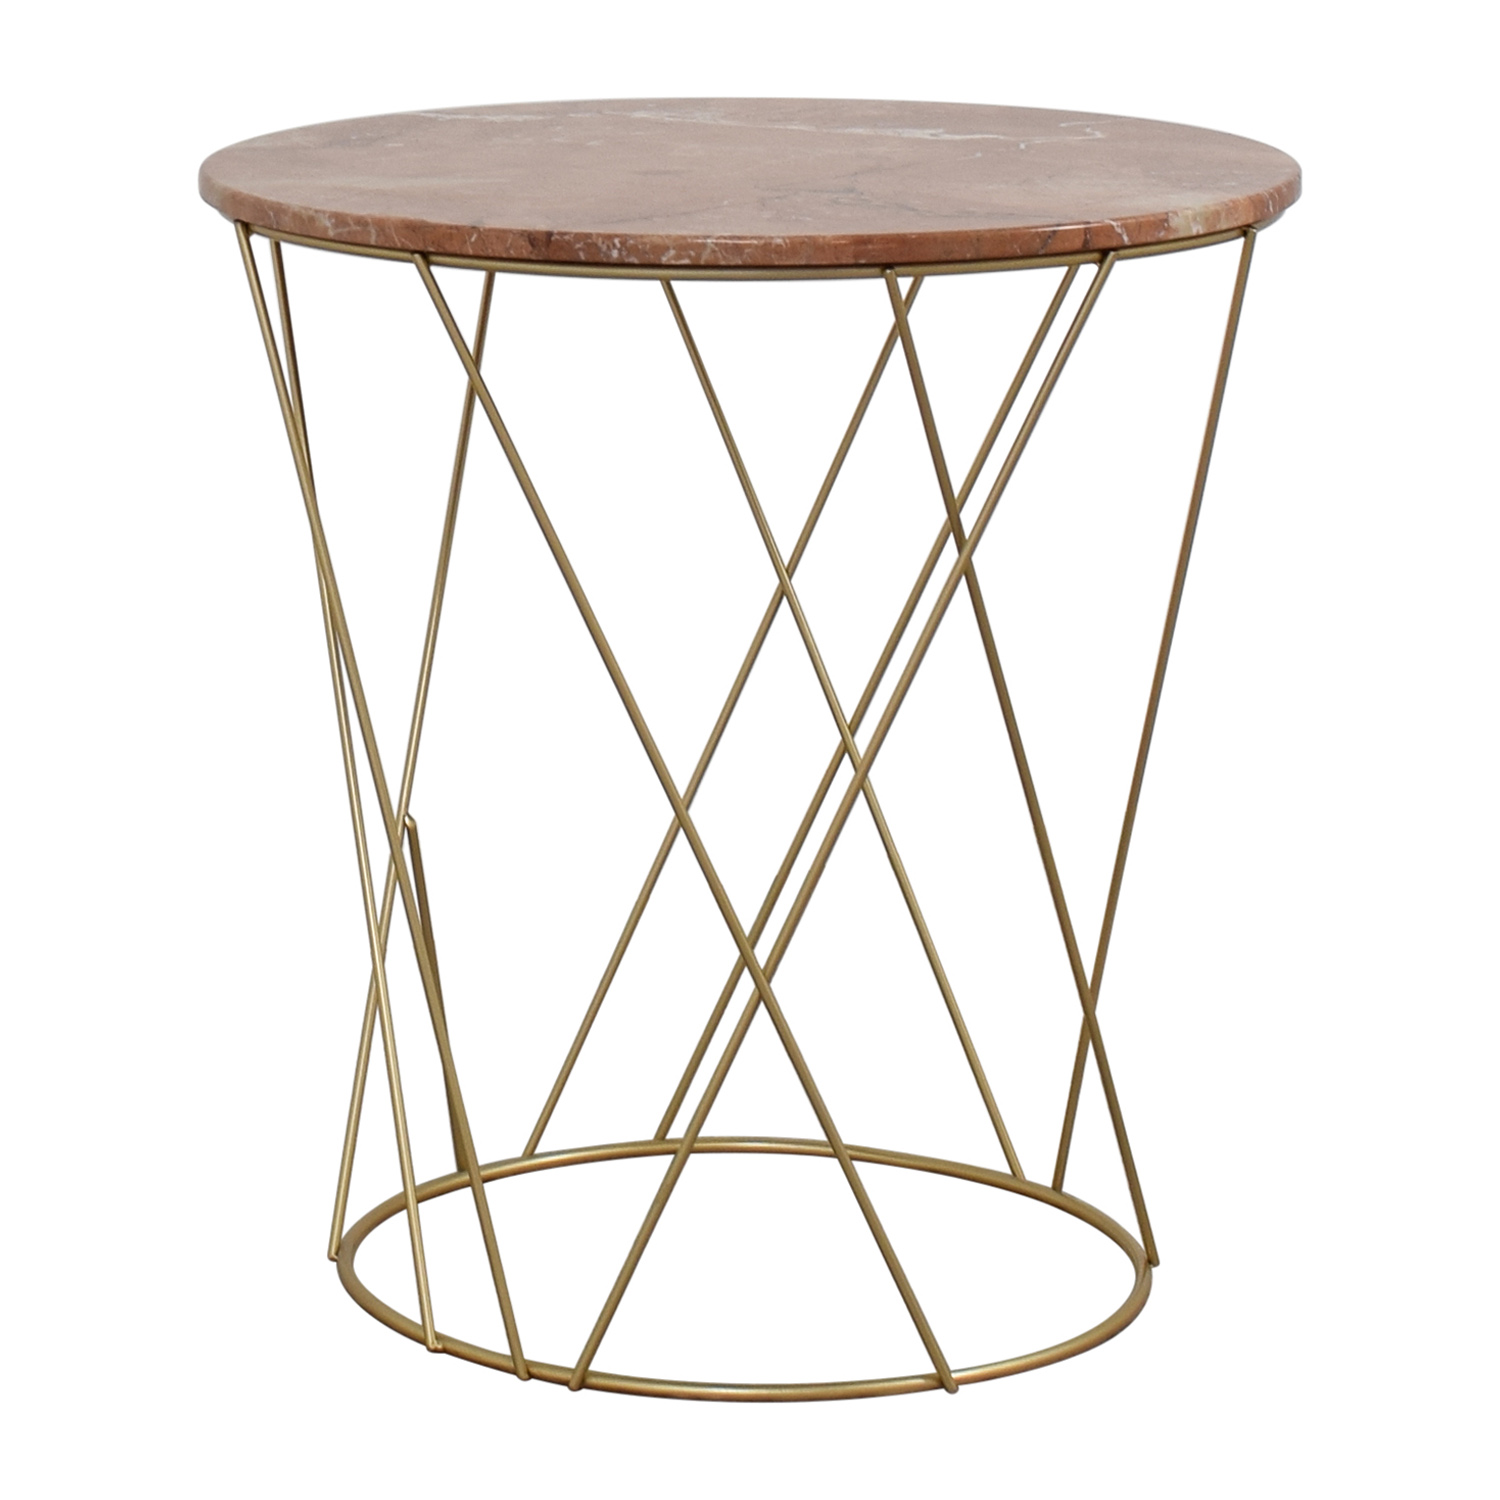 off lotus pink gold round marble table tables second hand accent outdoor coffee clearance solid cherry wood sofa with storage tall metal end glass top target threshold drawer